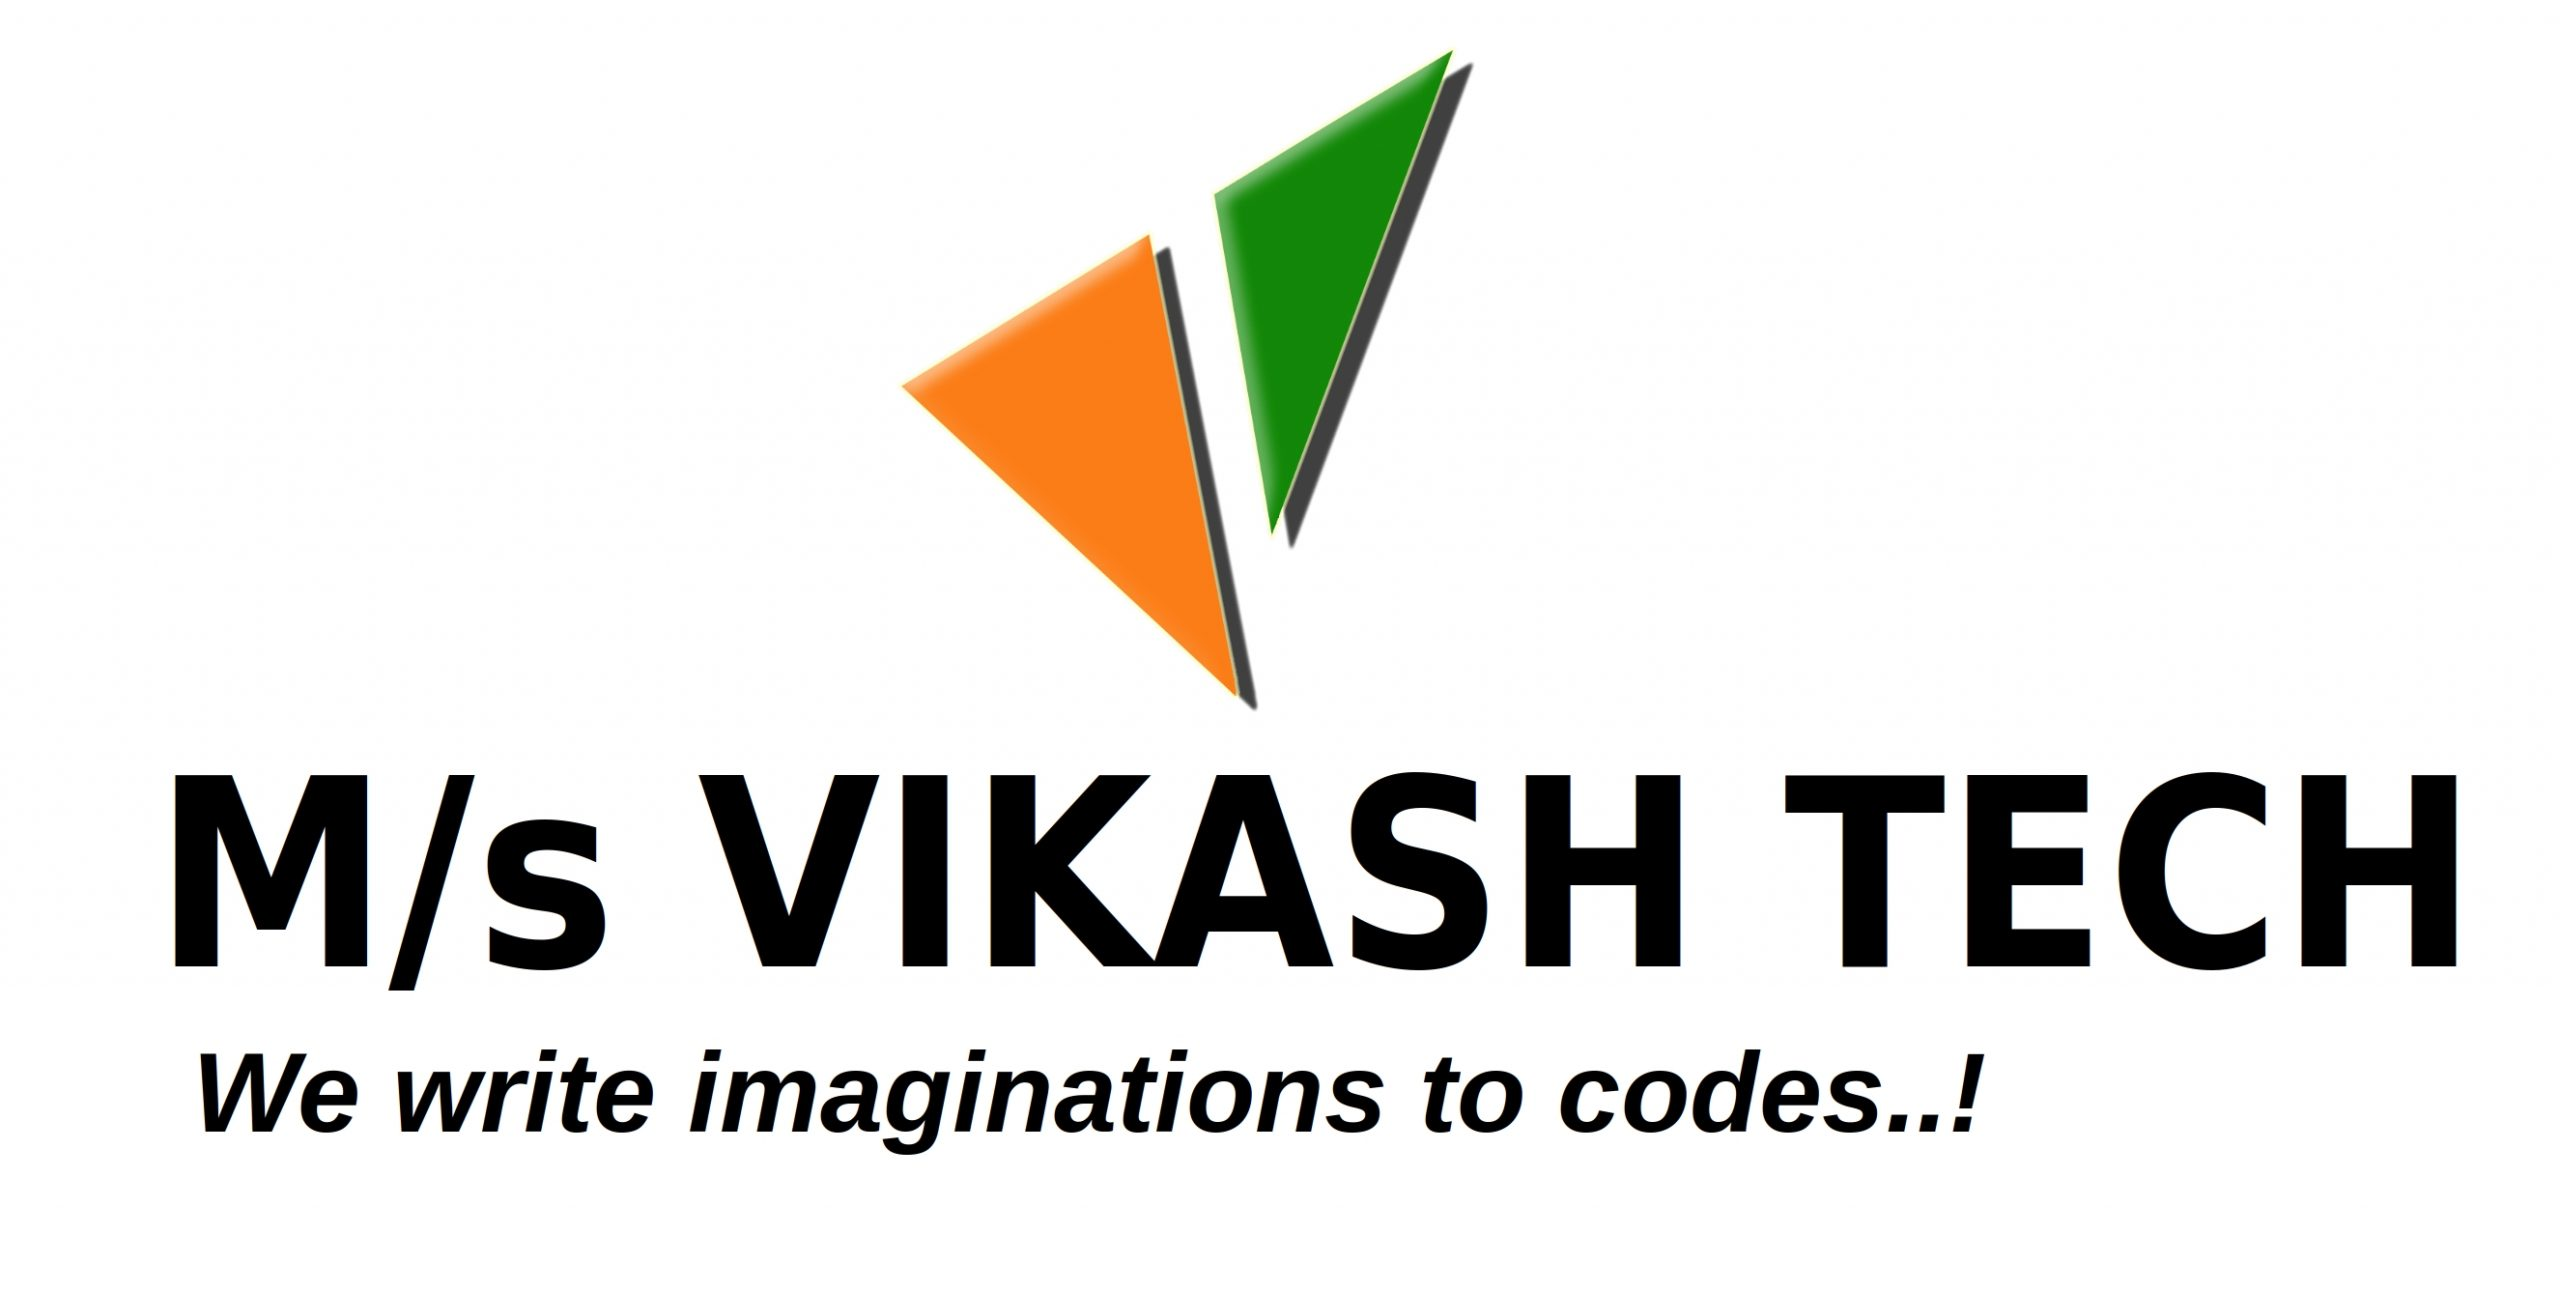 M/s VIKASH TECH